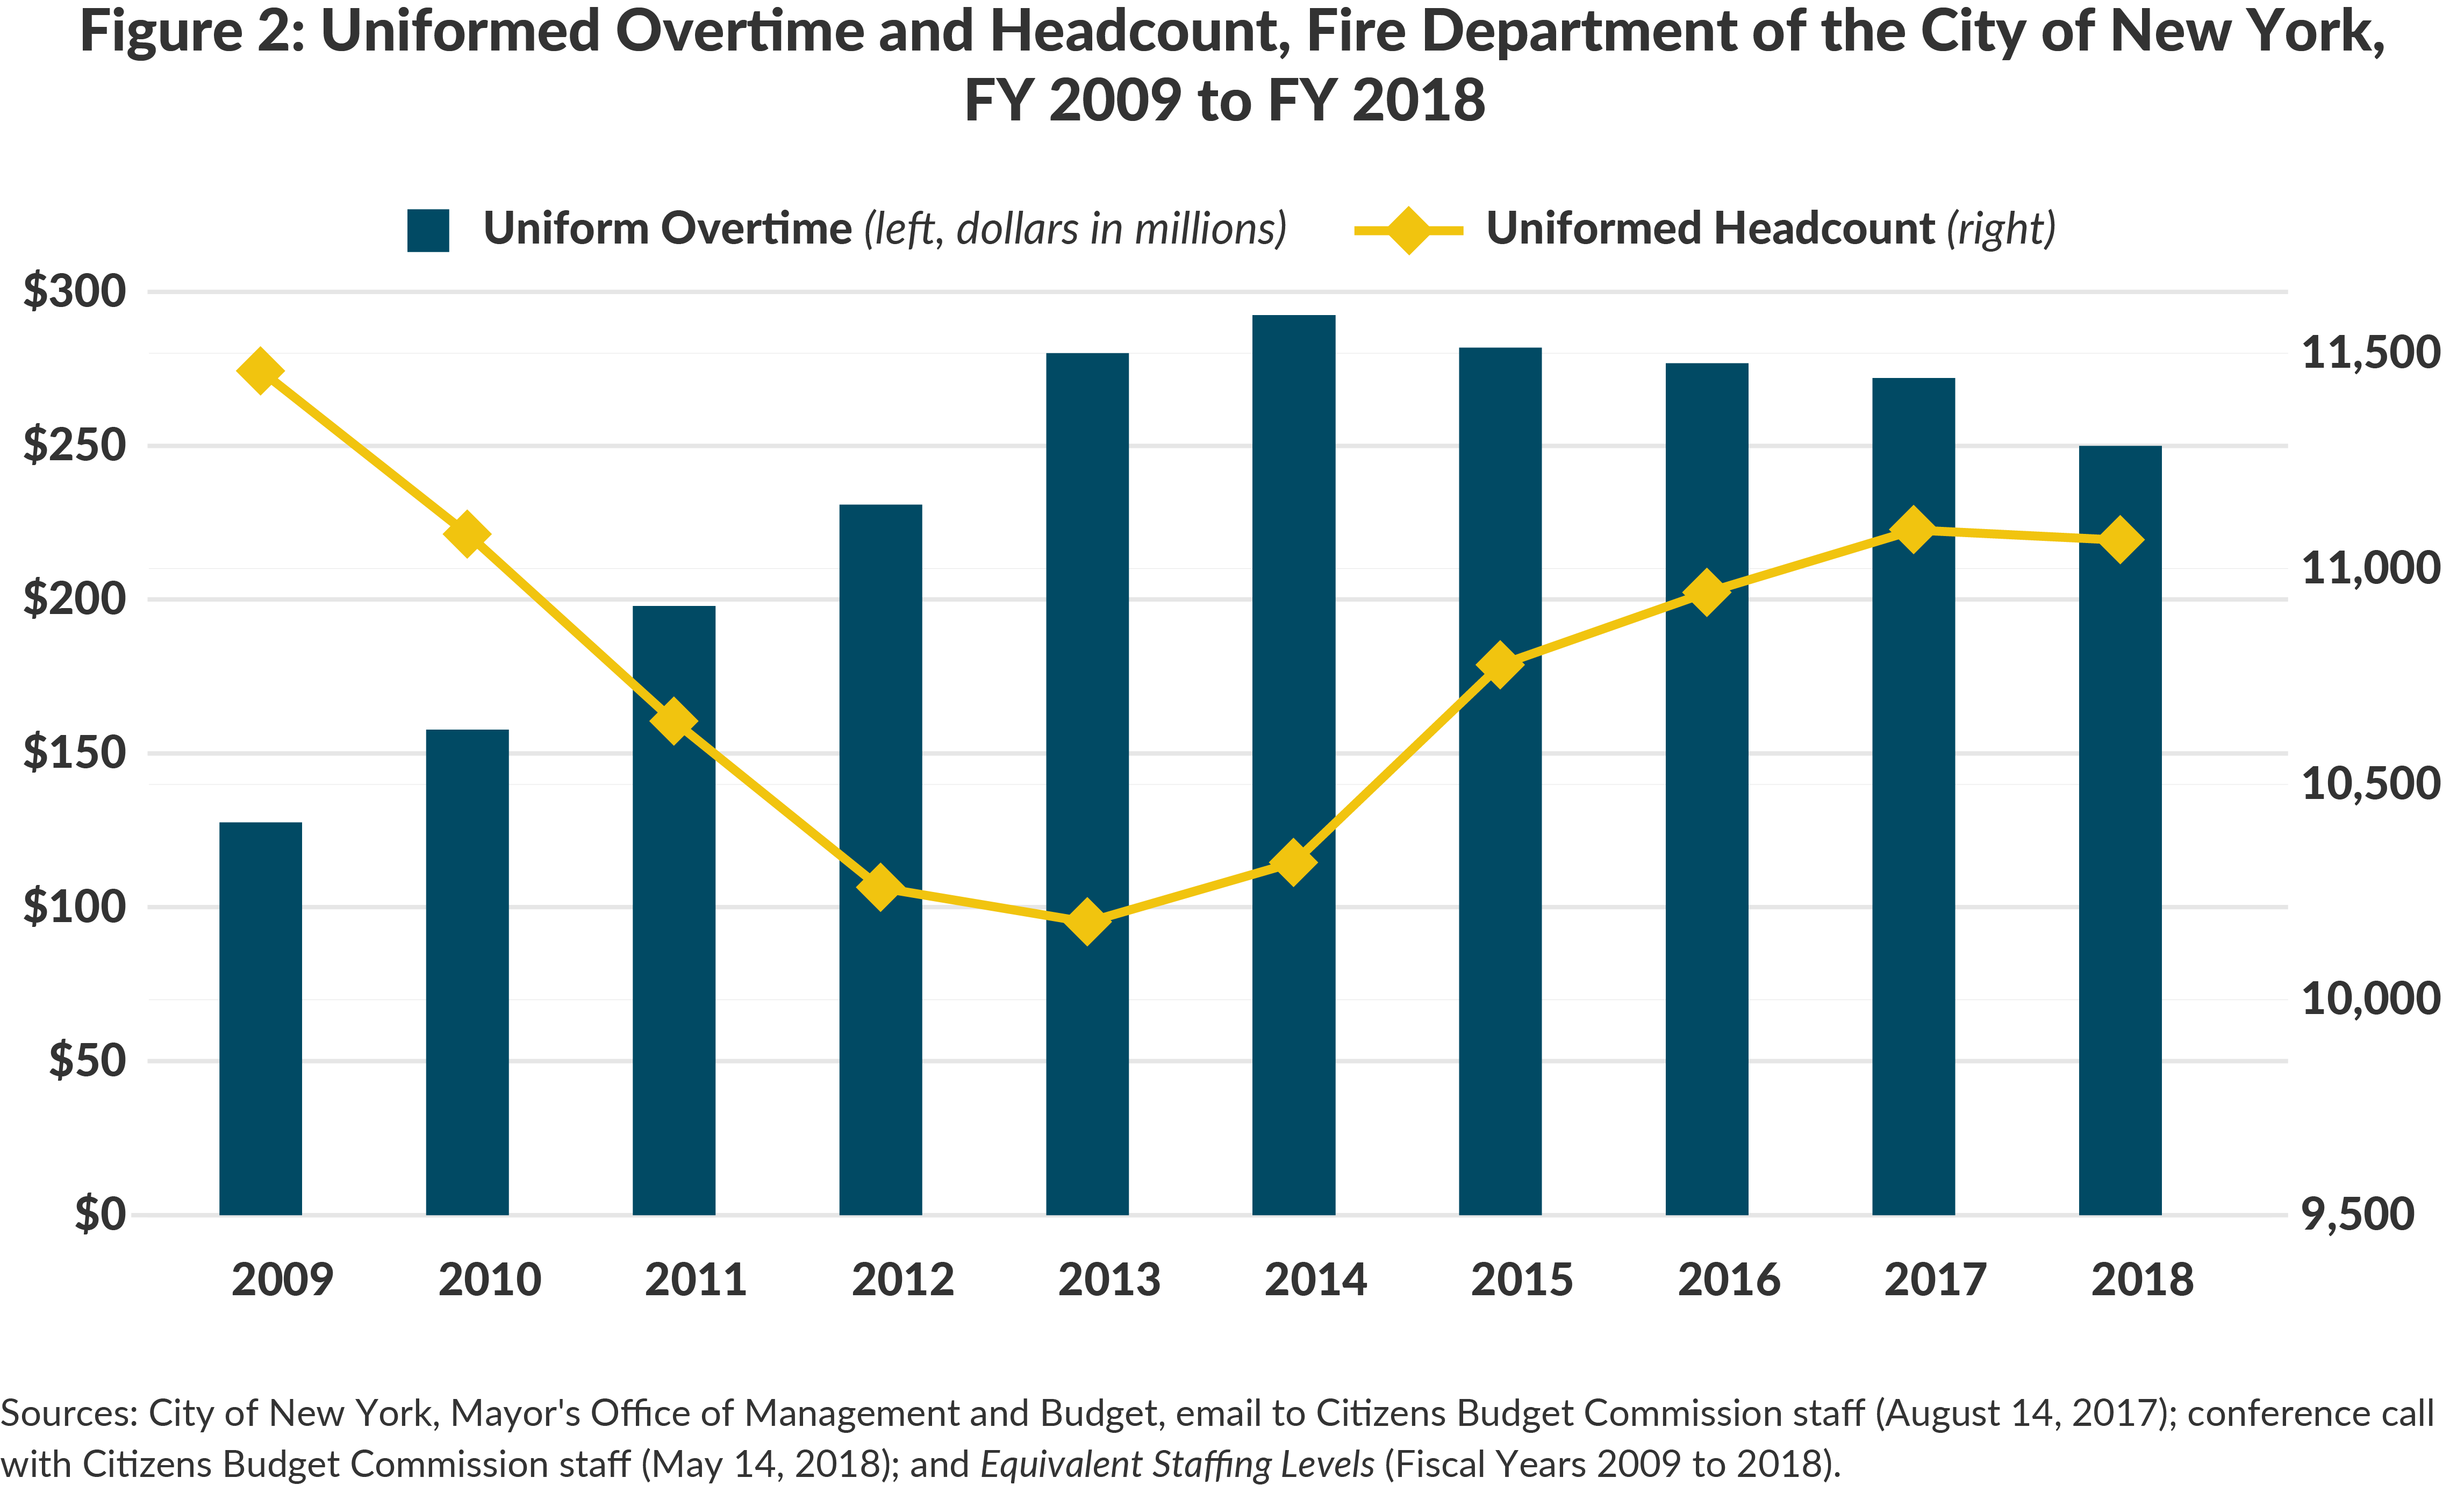 Figure 2: Uniformed Overtime and Headcount, Fire Department of the City of New York, FY 2009 to FY 2018